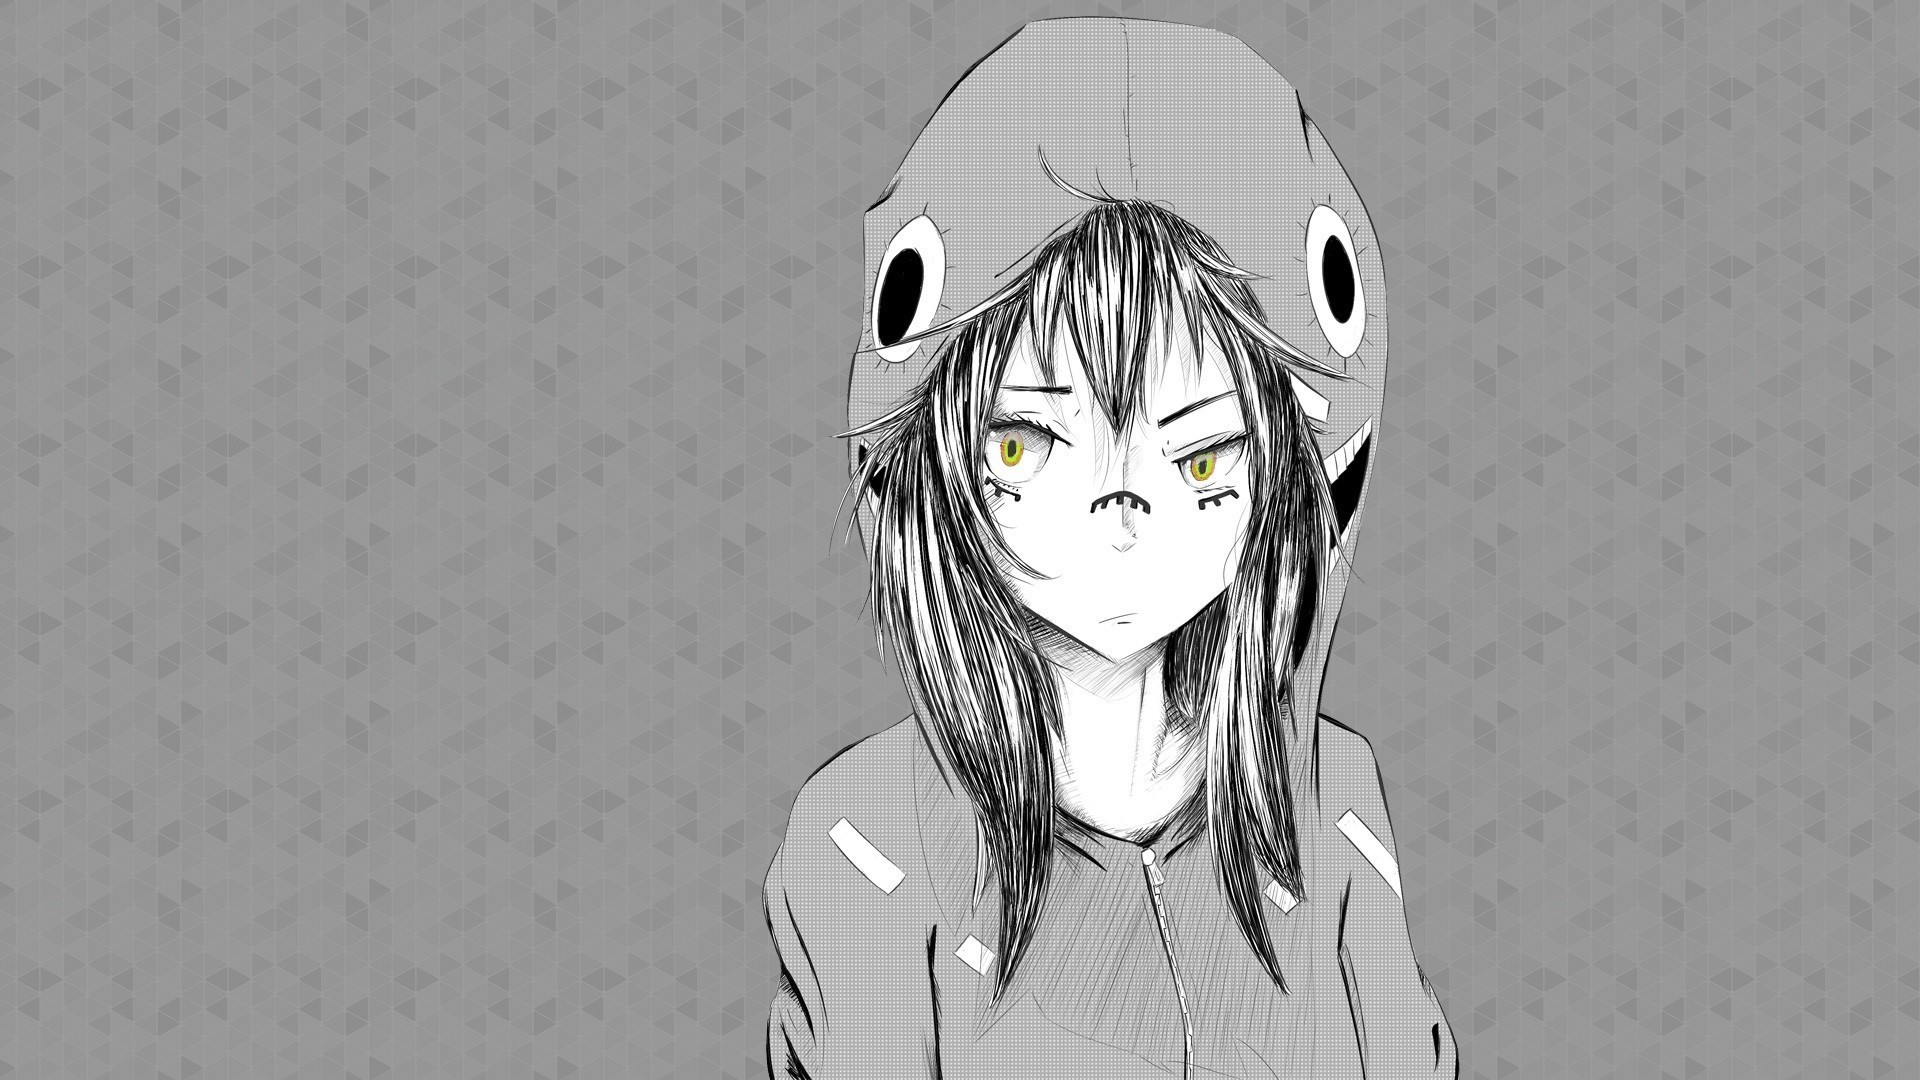 Black anime wallpaper 71 pictures - Black and white anime wallpaper ...